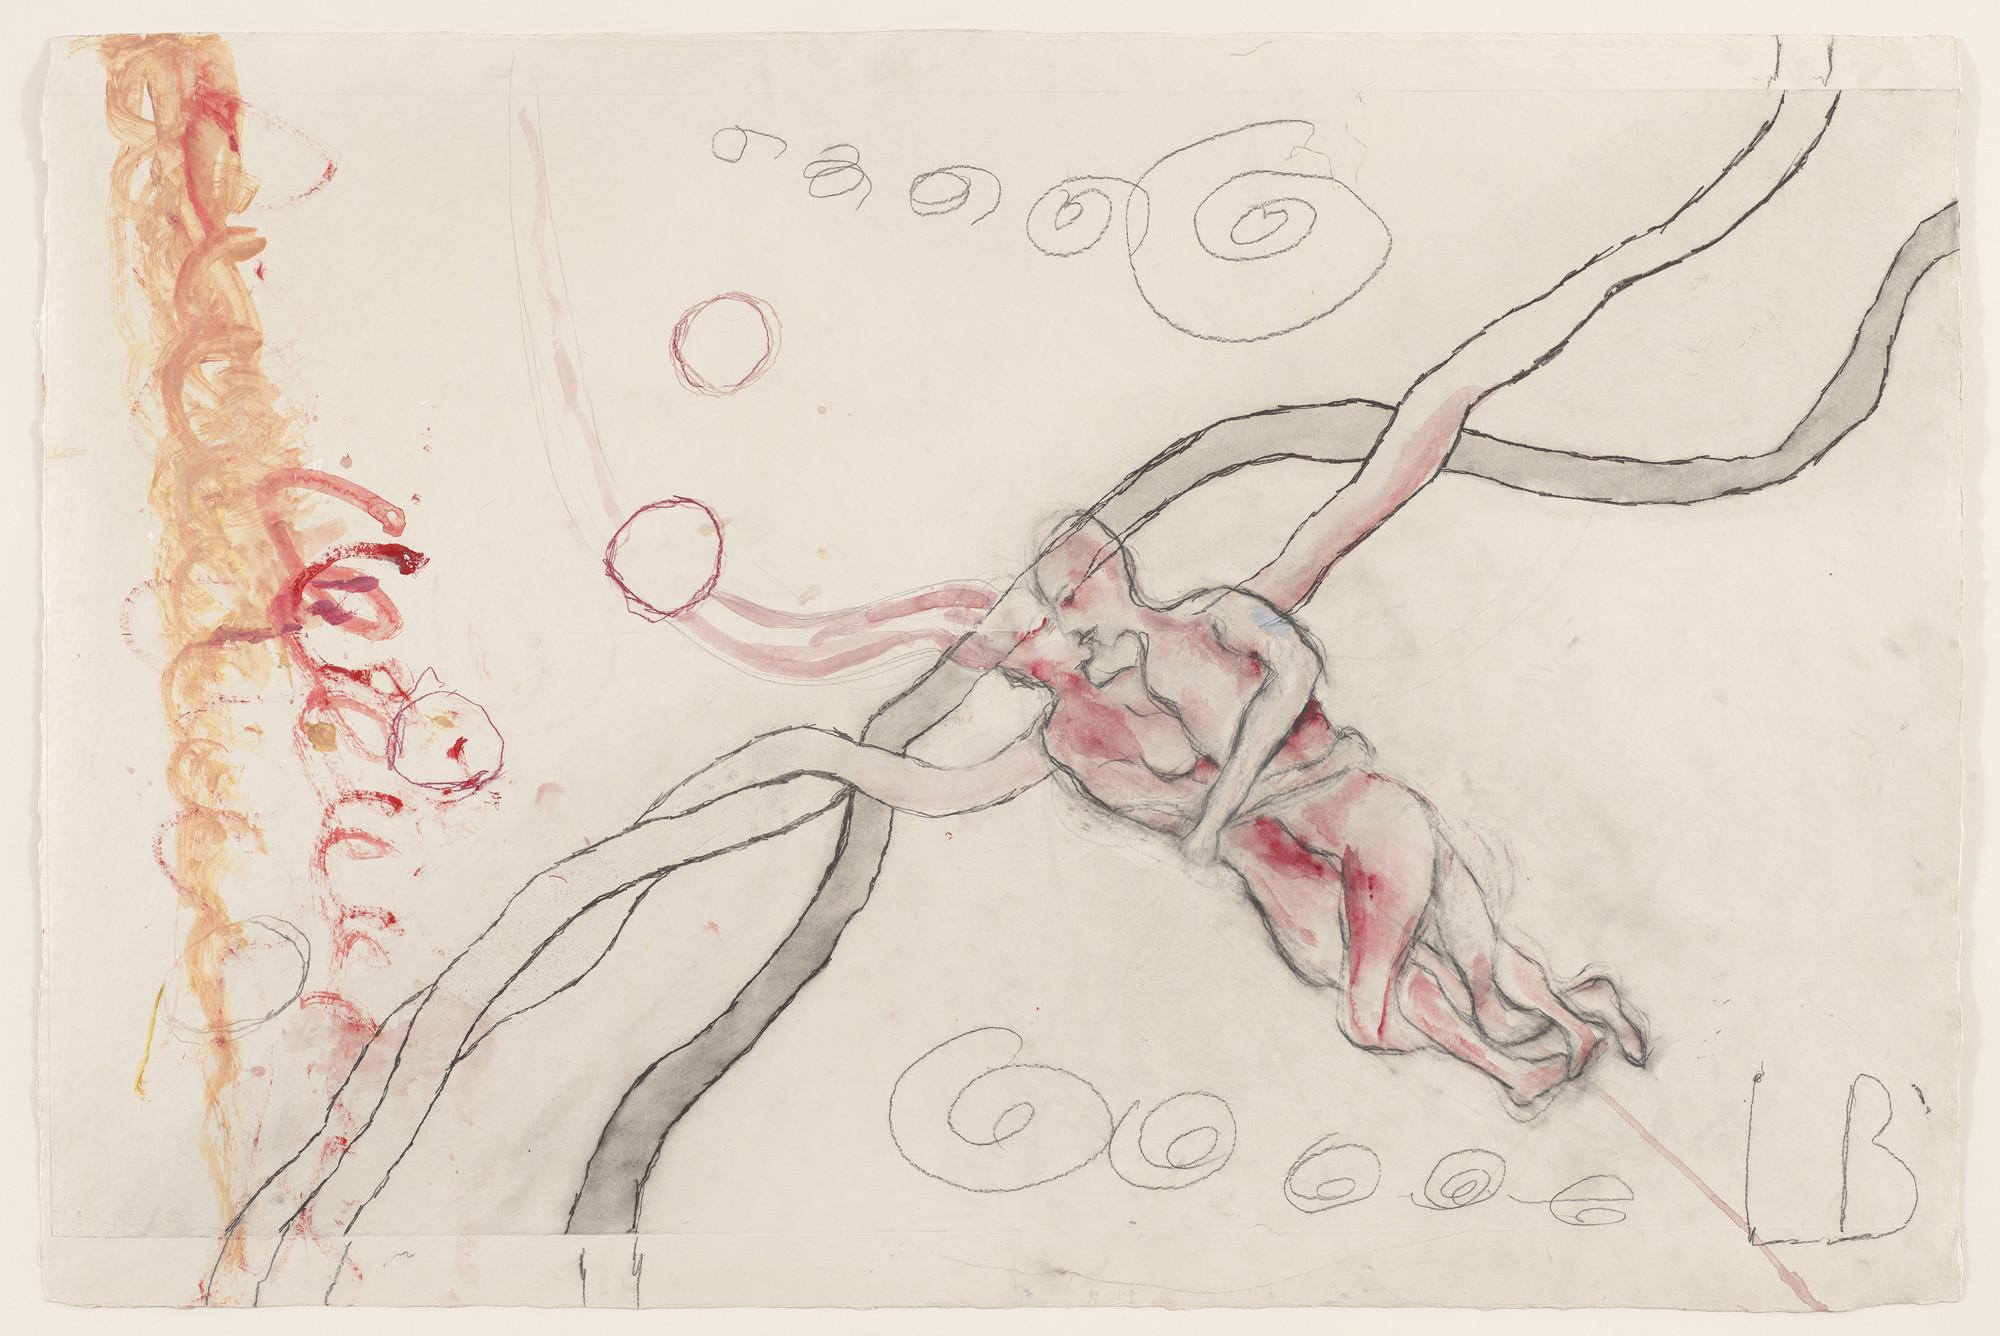 Louise Bourgeois. Untitled, no. 11 of 14, from À l'Infini (set 1). 2008